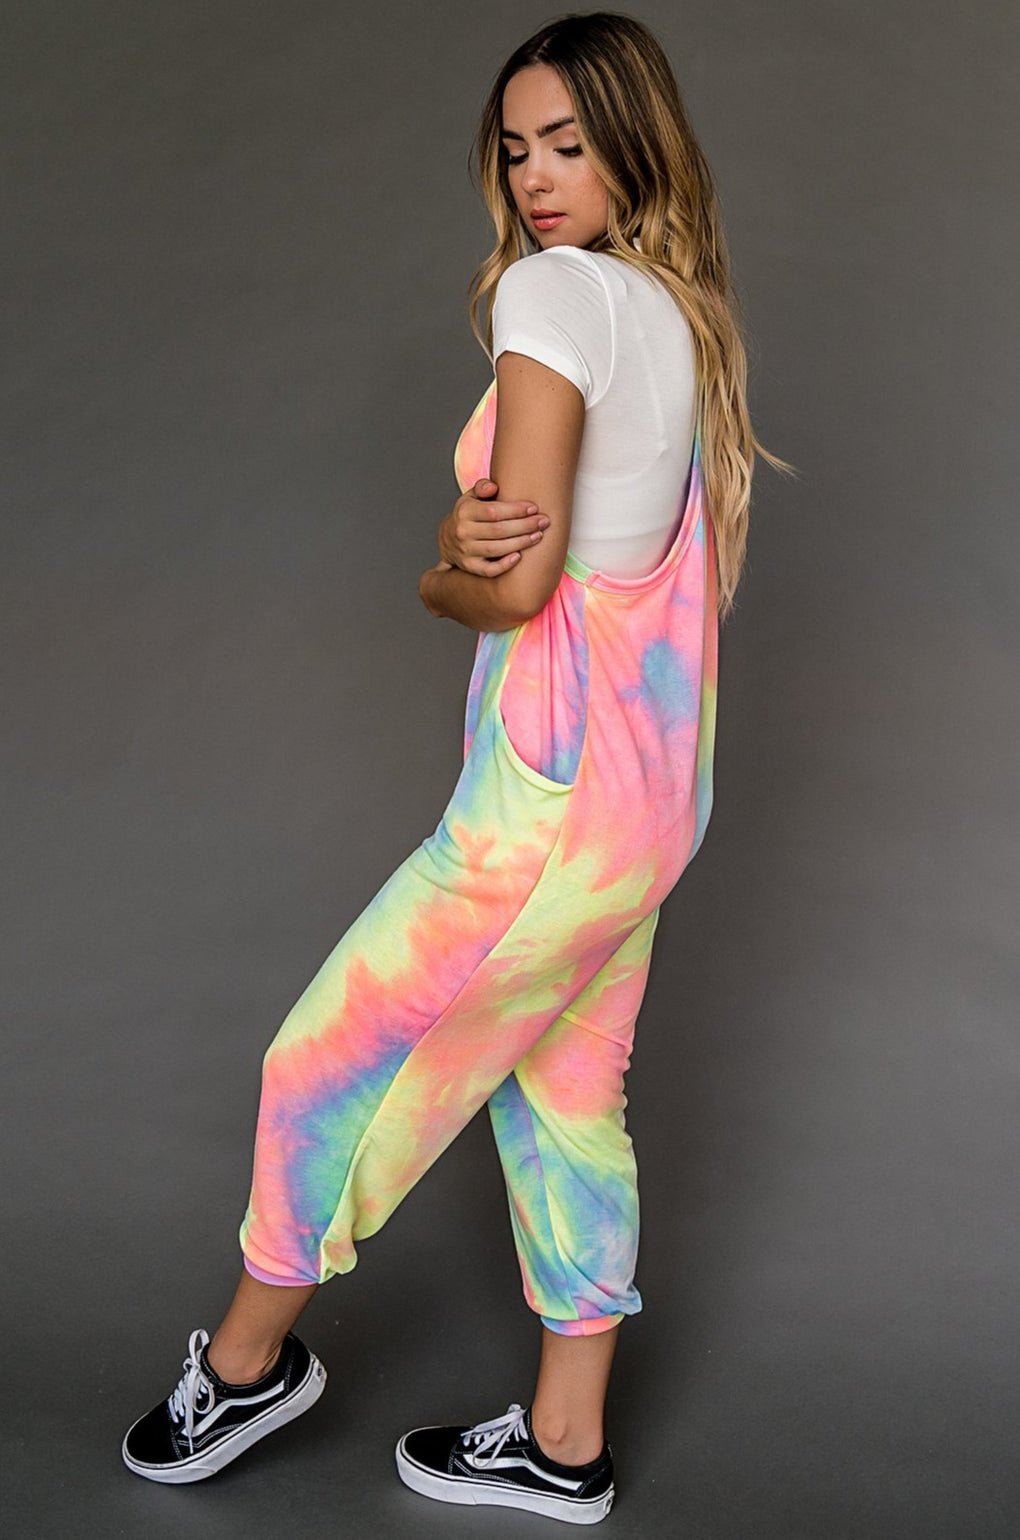 Catching Feels Jumper in Neon Tie Dye